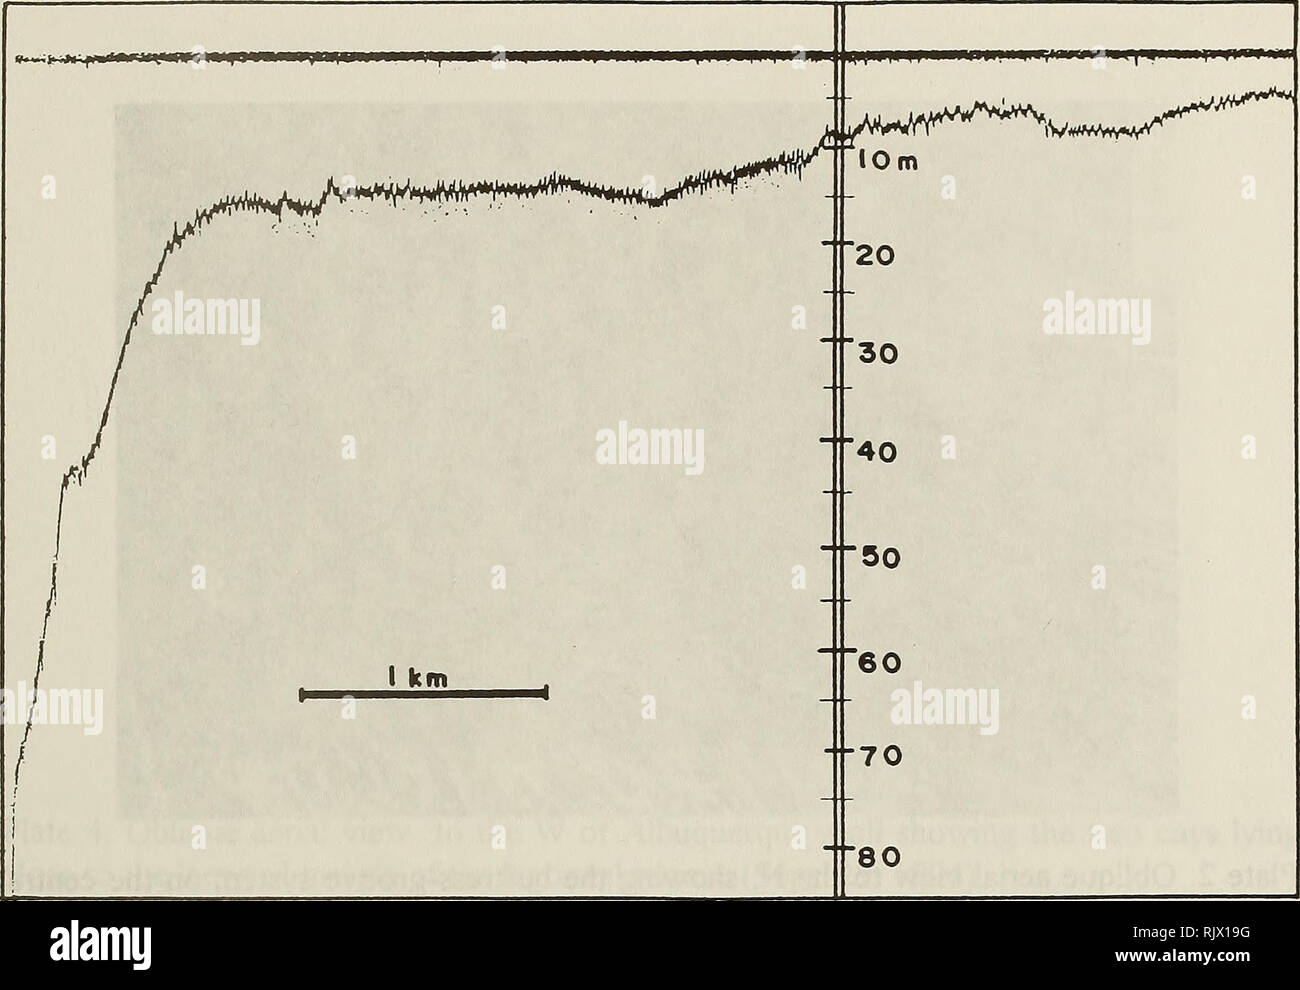 """. Atoll research bulletin. Coral reefs and islands; Marine biology; Marine sciences. 29. Figure 8. Echosounder bathymetric profile of the leeward terrace and outer slope at Albuquerque atoll. Note the presence of a truncation (sandy bench or step) at about -40 m depth on the outer slope. ' . â """". -/ ' ' -r-? - ^*> Â«Ri£»"""""""""""":' v- -'' 'â¢?;_ ^'""""""""""""'j' .-""""""""'' Aft* """"' <? r ^* d